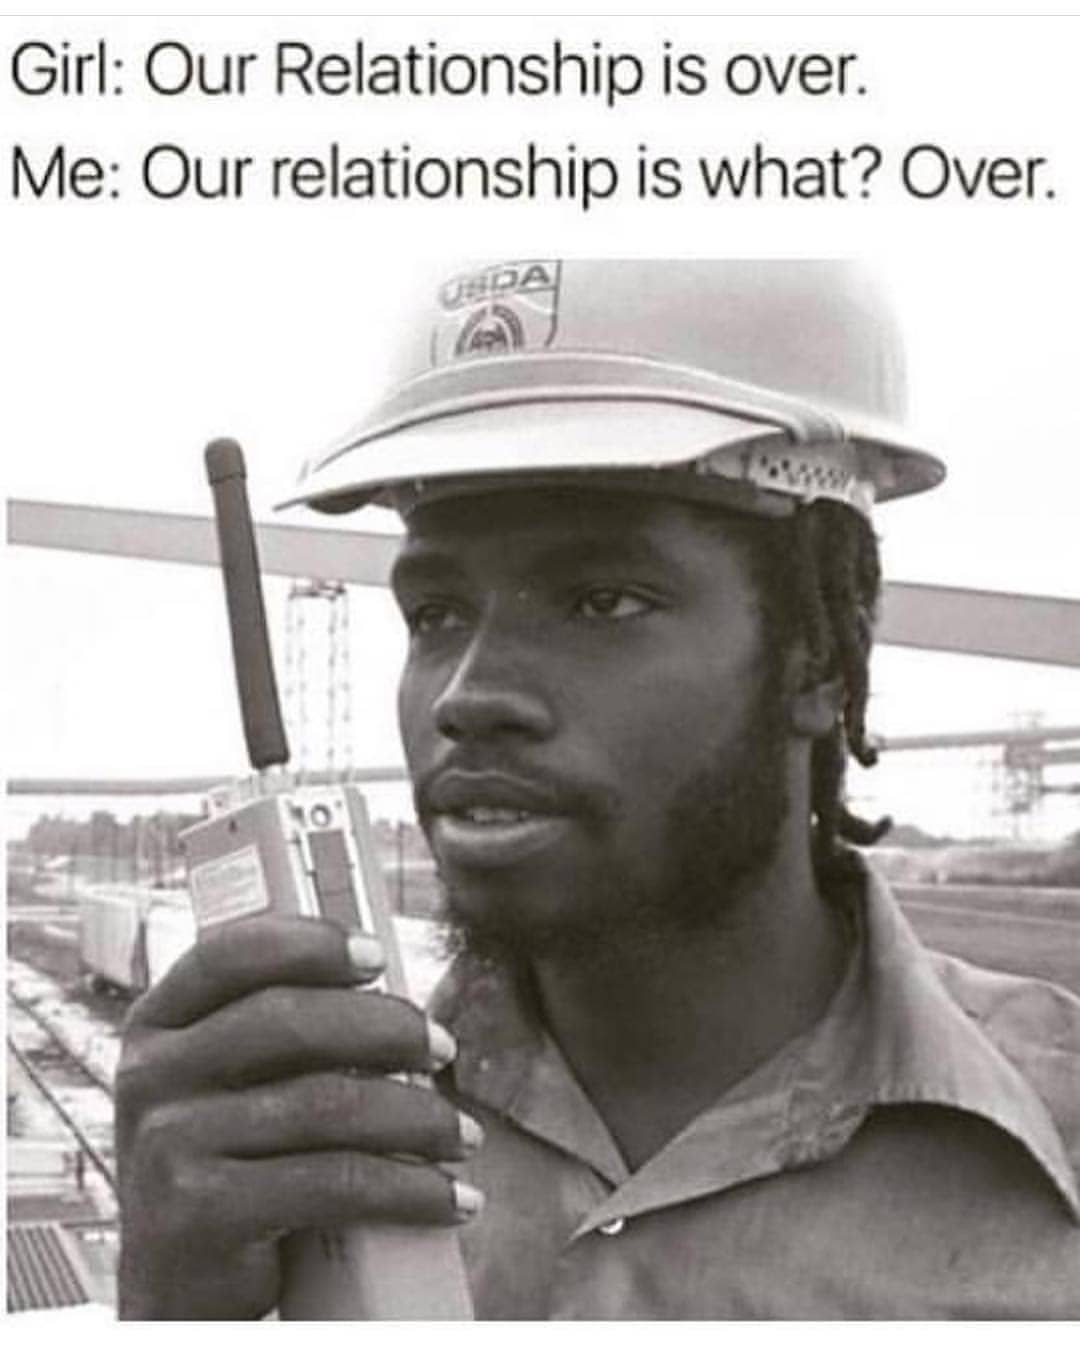 Relationship is over meme